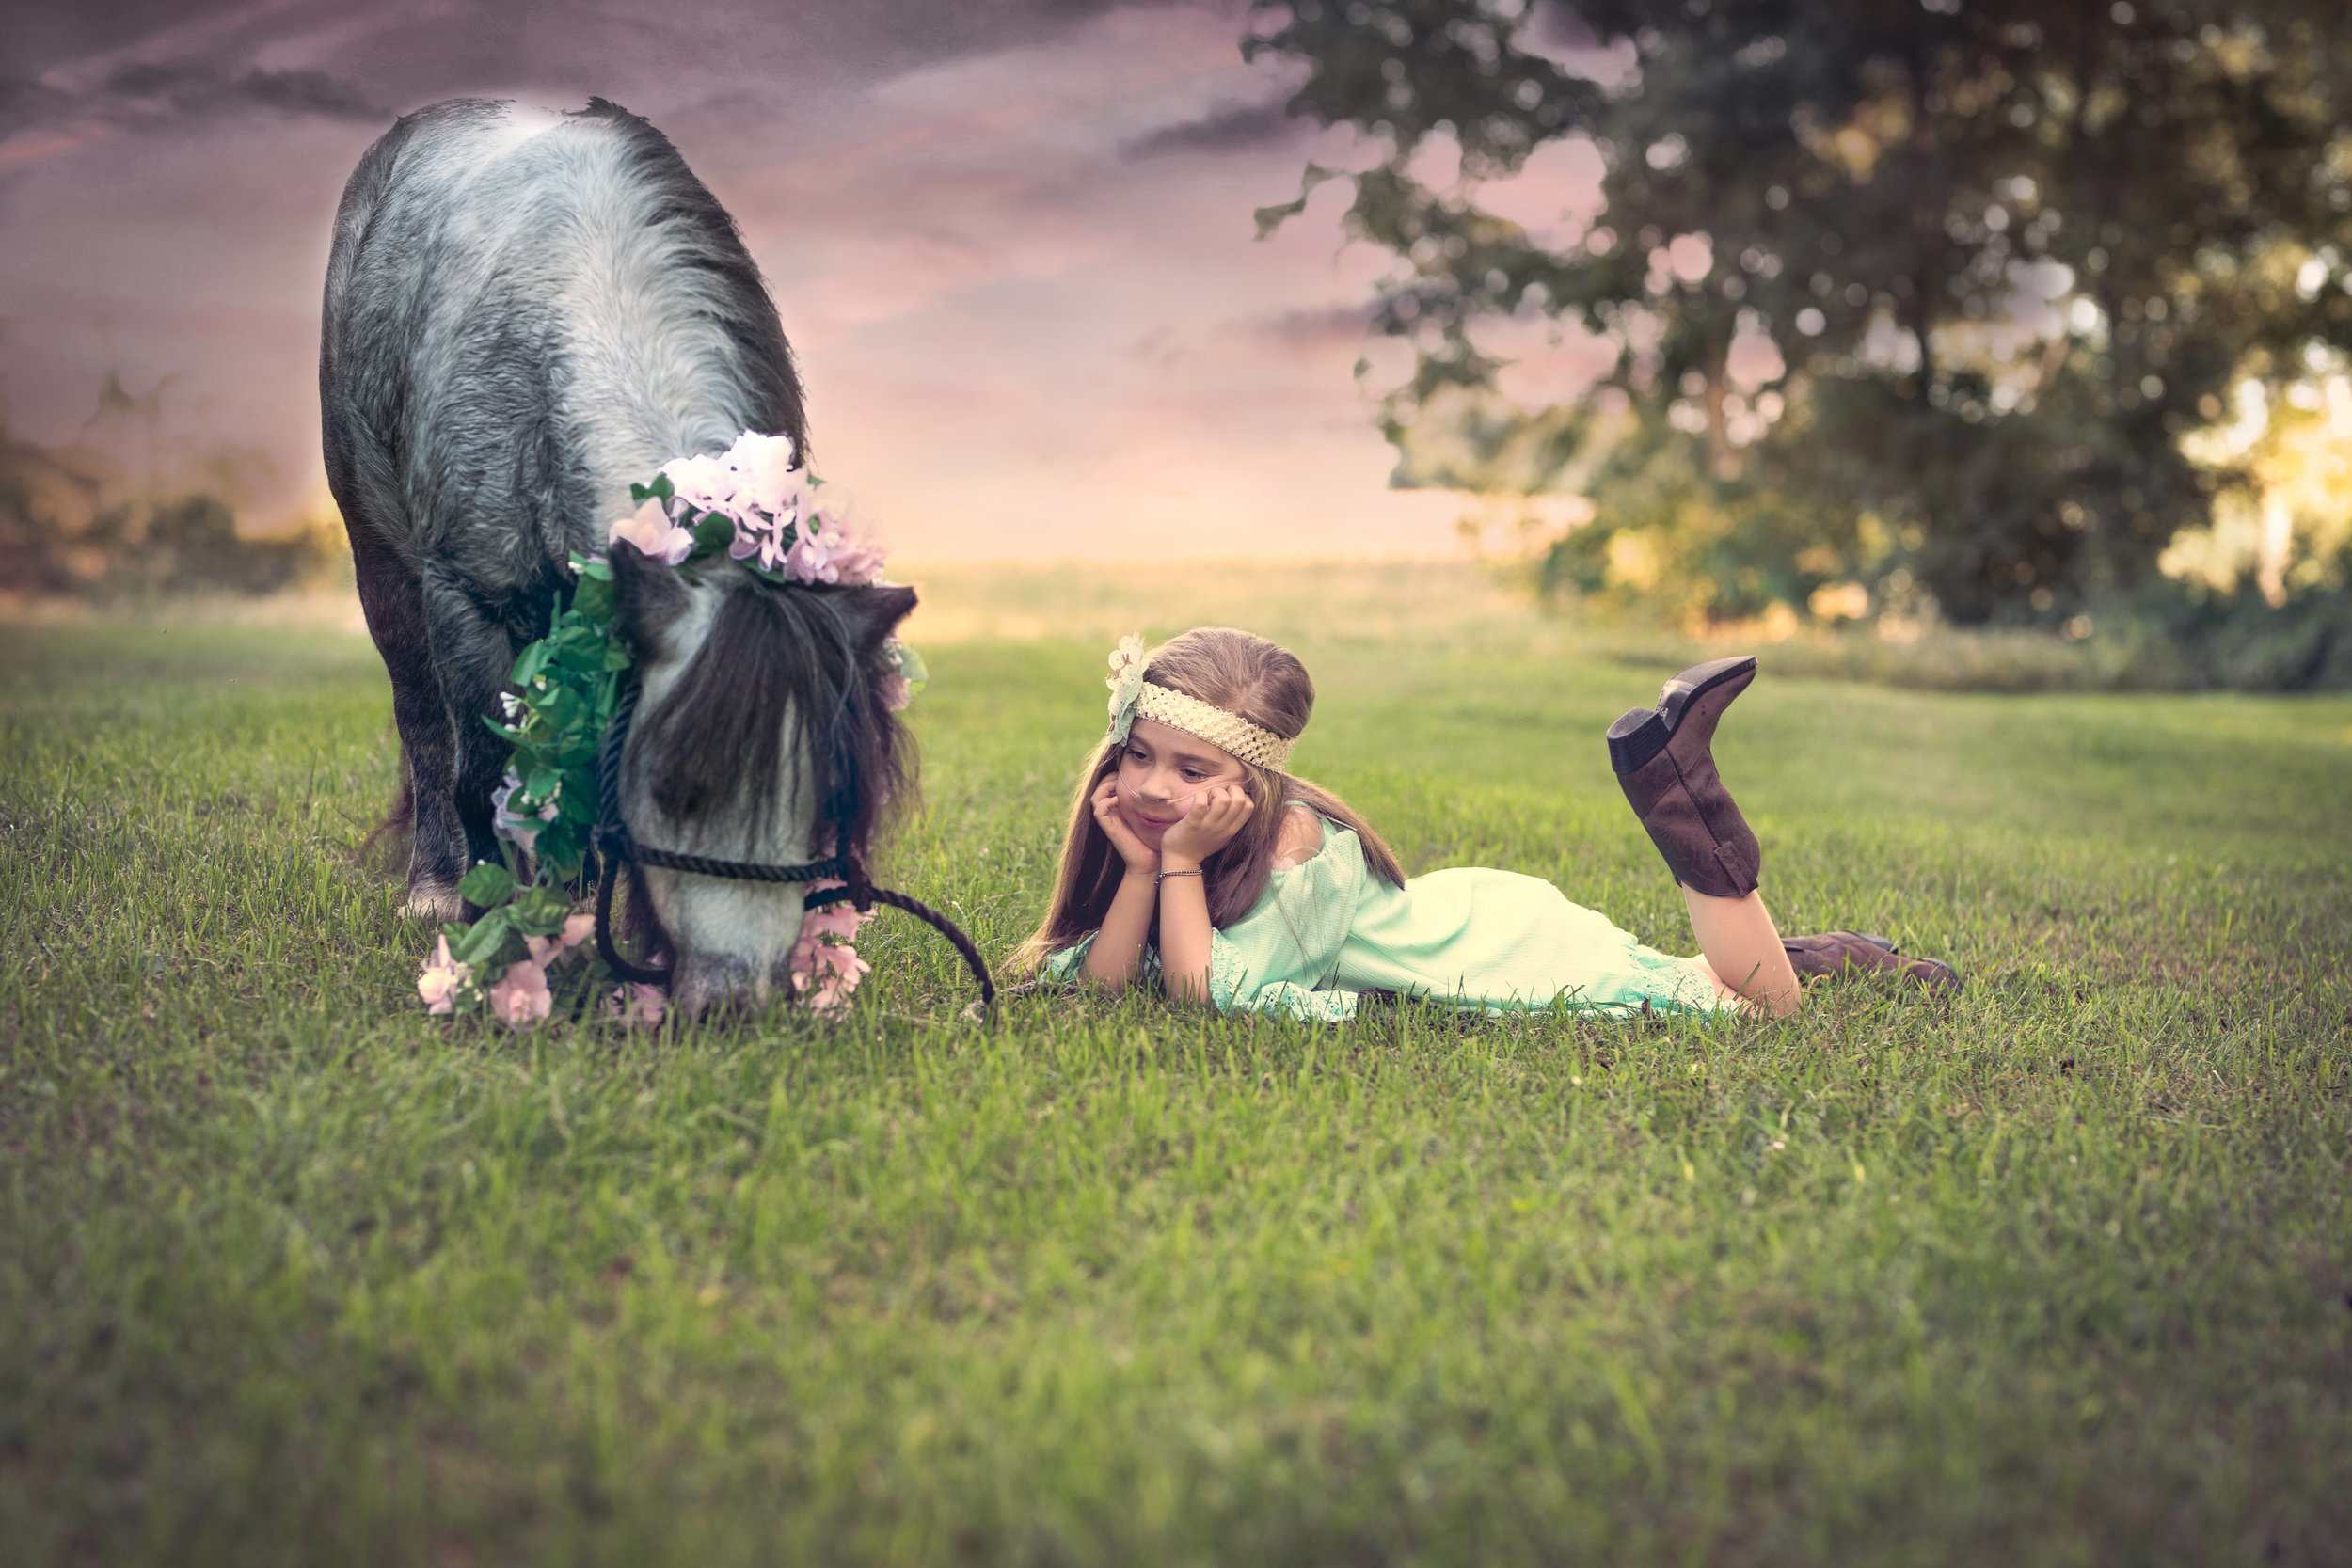 Jodie-Aldred-Photography-Chatham-Kent-Elgin-Middlesex-London-Ontario-Farm-Family-horse-sunset.jpg